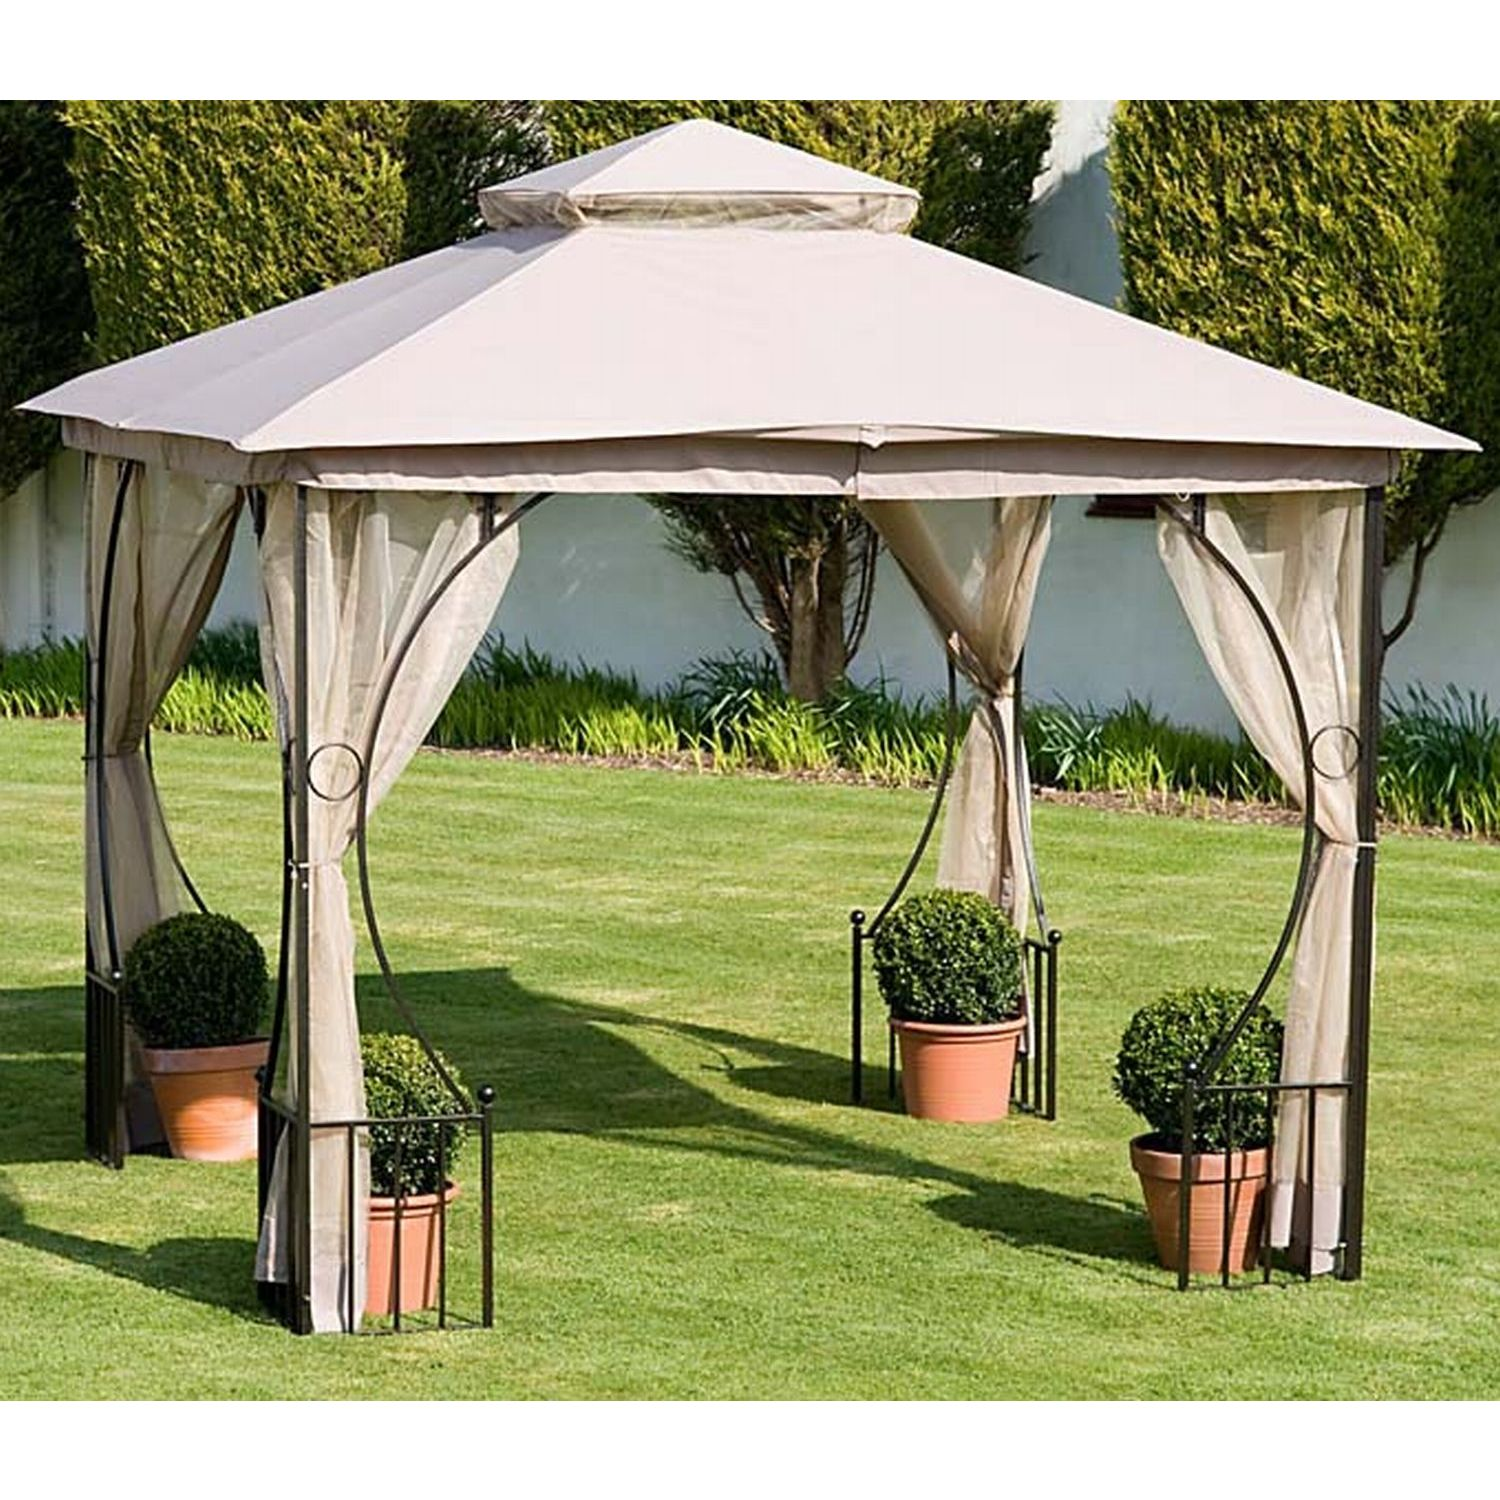 cambridge deluxe garden gazebo. Black Bedroom Furniture Sets. Home Design Ideas